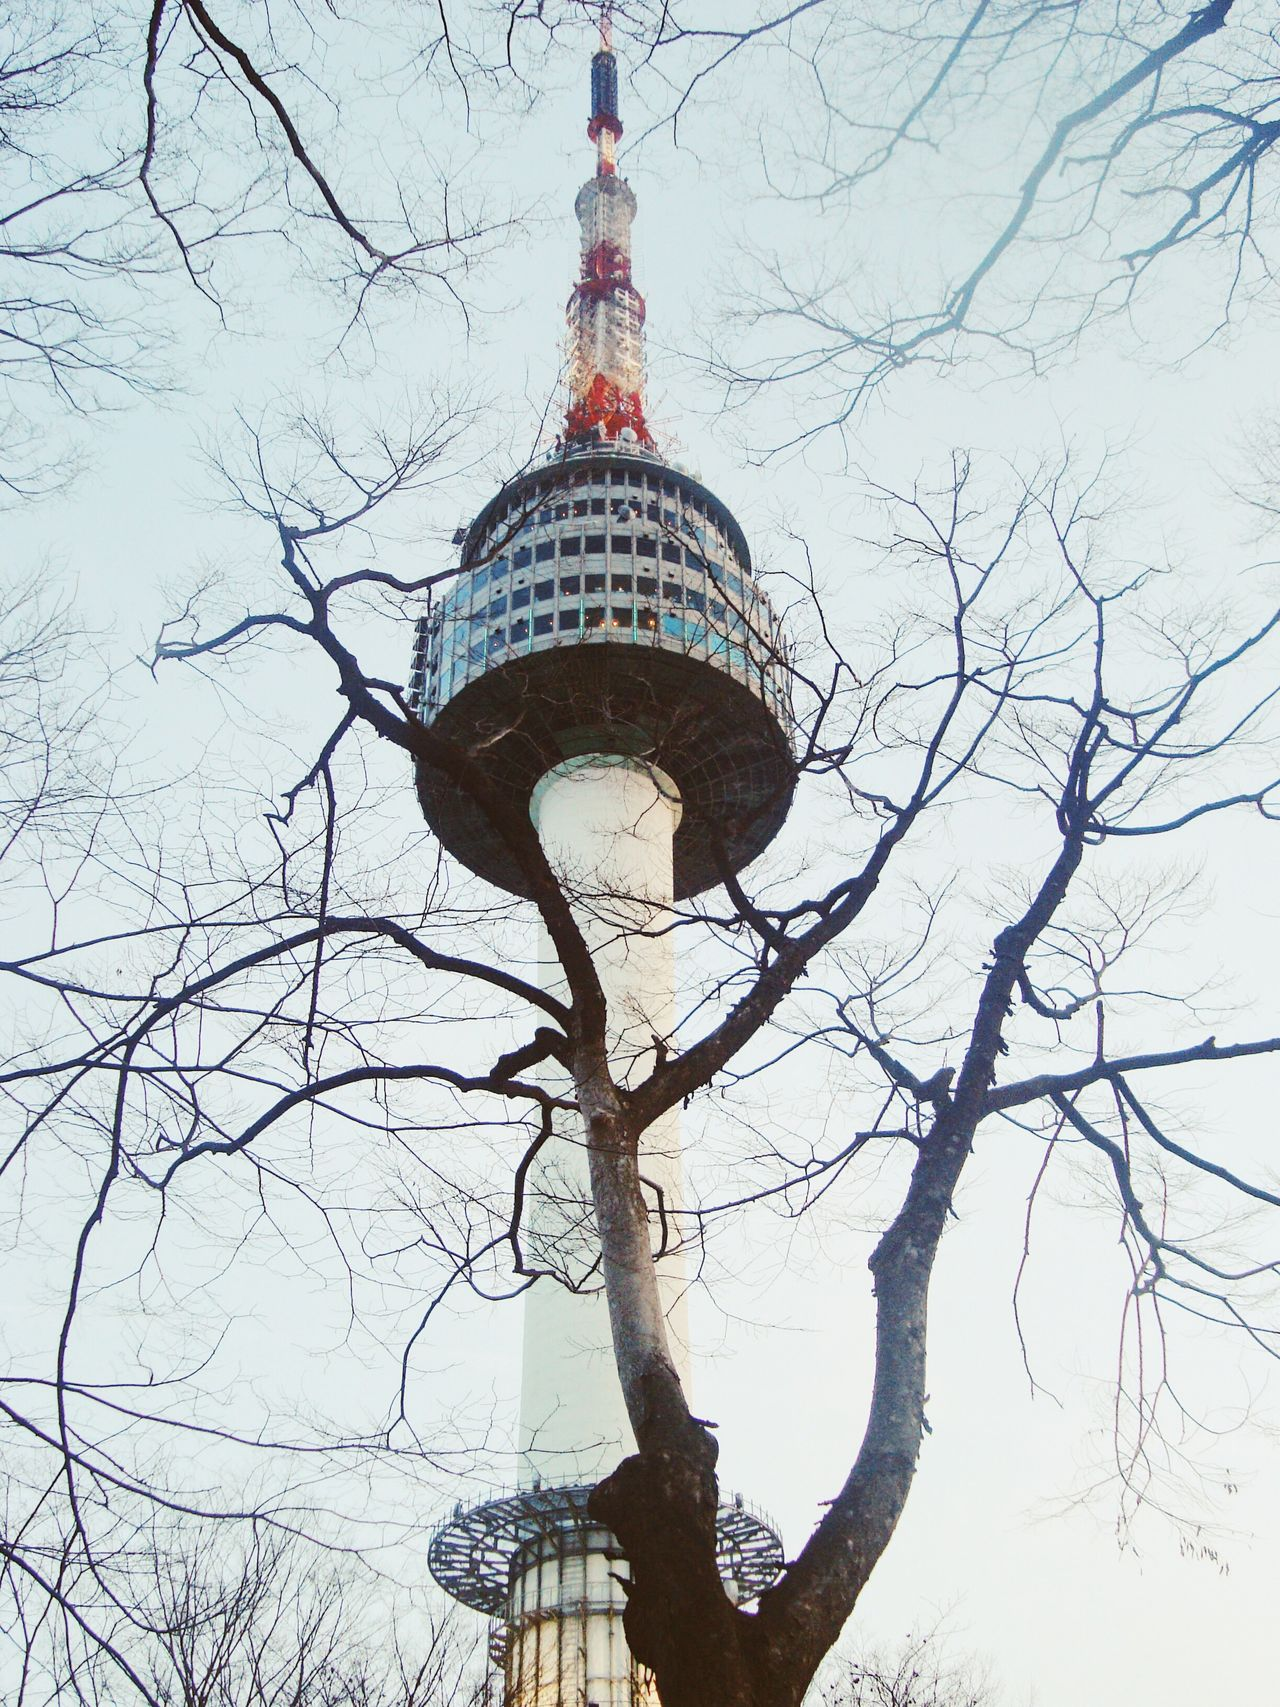 Winter View Tree Travel Tower Korea Skyline Seoul, Korea Scenic Scenery Seoul Tower Destination Architecture Namsan_mountain Building Landmark EyeEmNewHere EyeEmNewHere